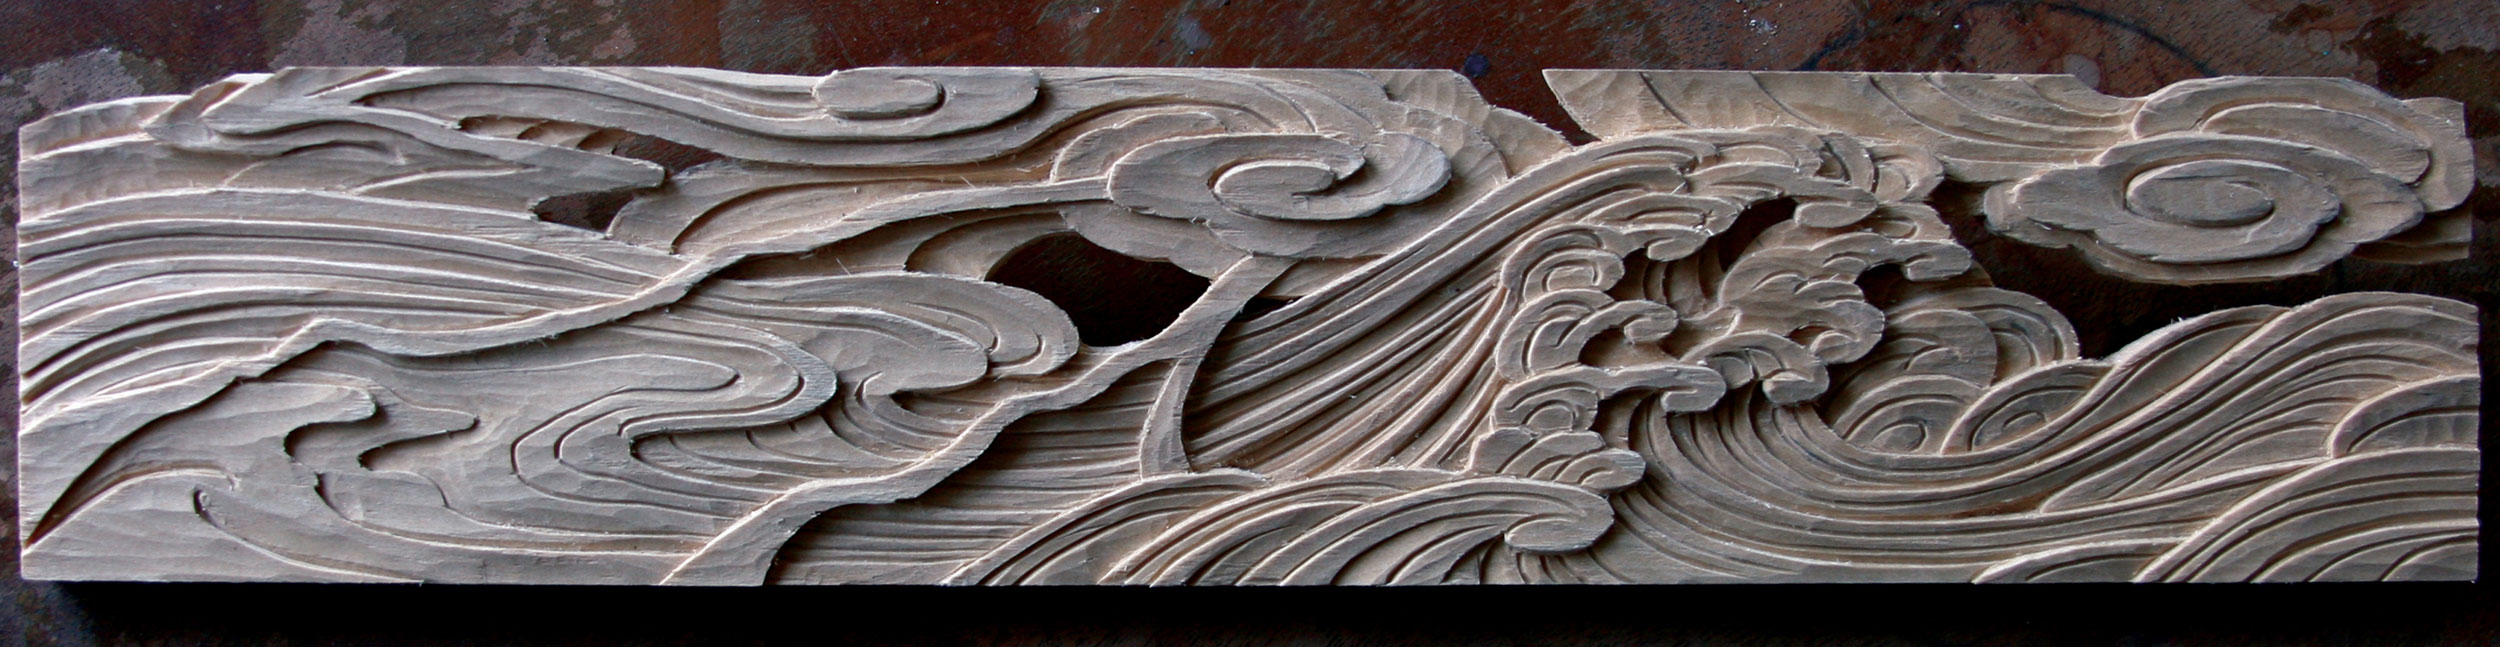 "Untitled (storm at sea).  2013 - hand carved wood. 3"" x 13""."